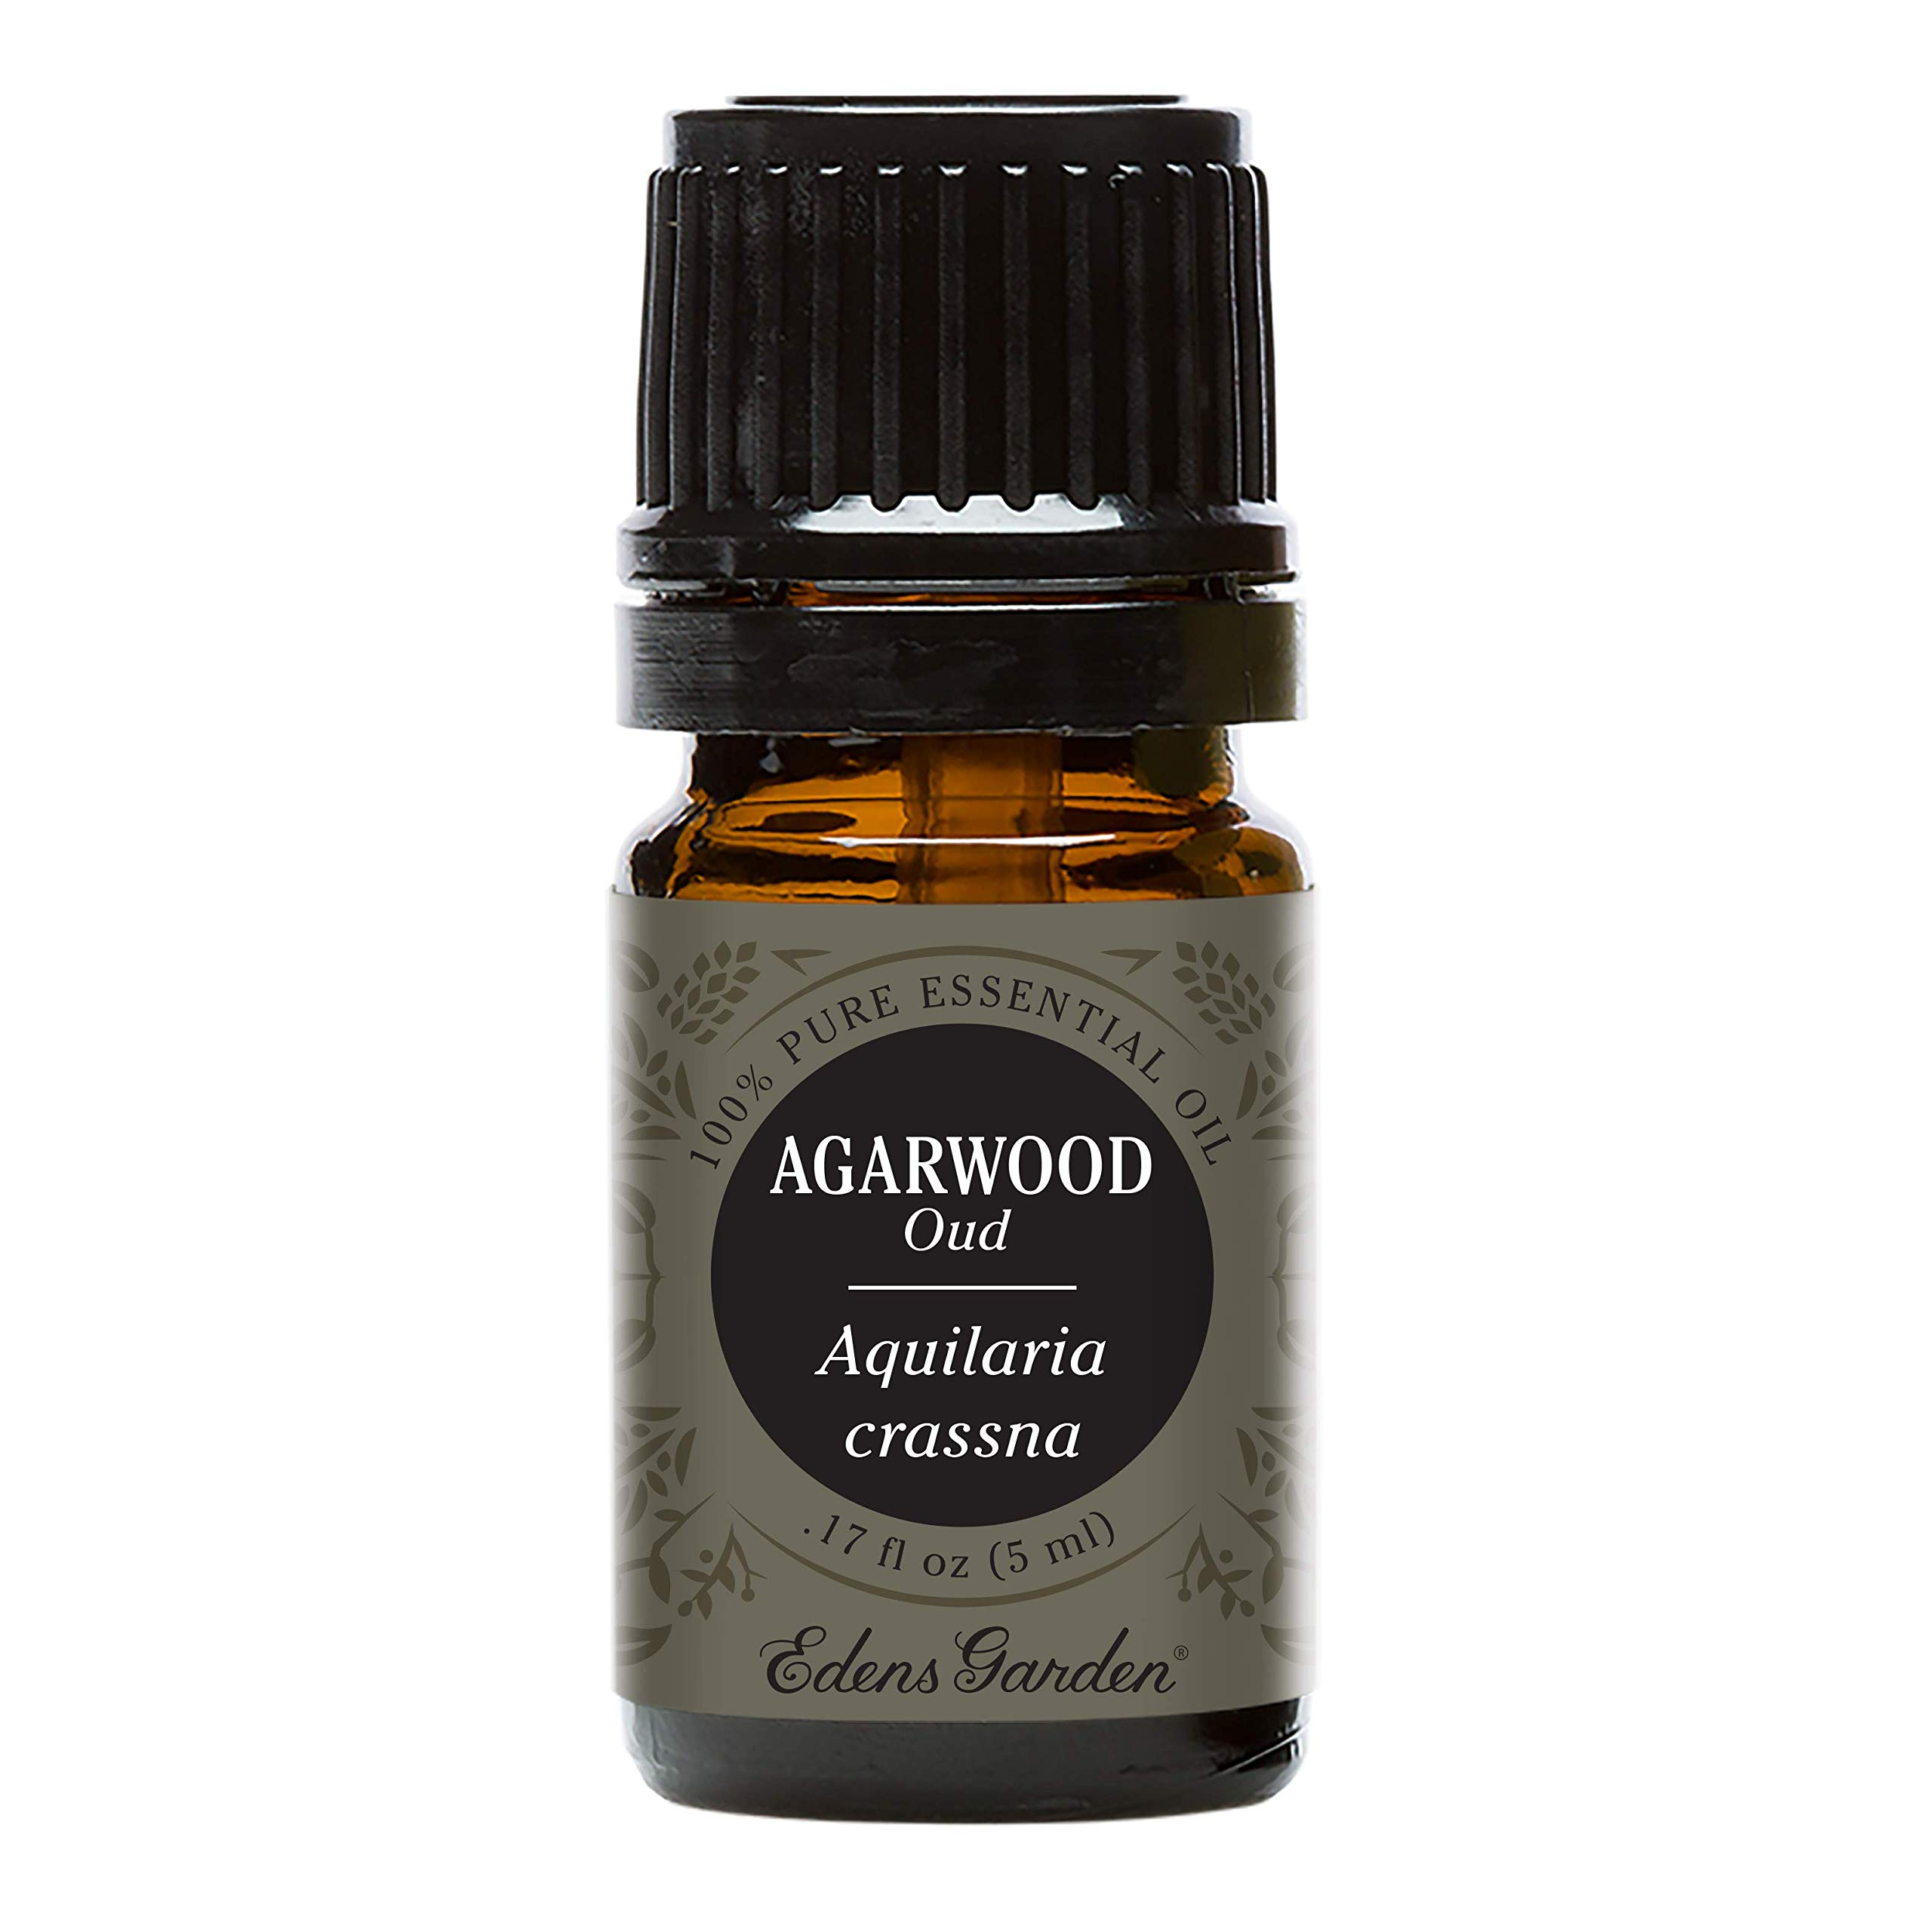 Edens Garden Agarwood (Oud) Essential Oil, 100% Pure Therapeutic Grade (Highest Quality Aromatherapy Oils- Anxiety & Stress), 5 ml by Edens Garden